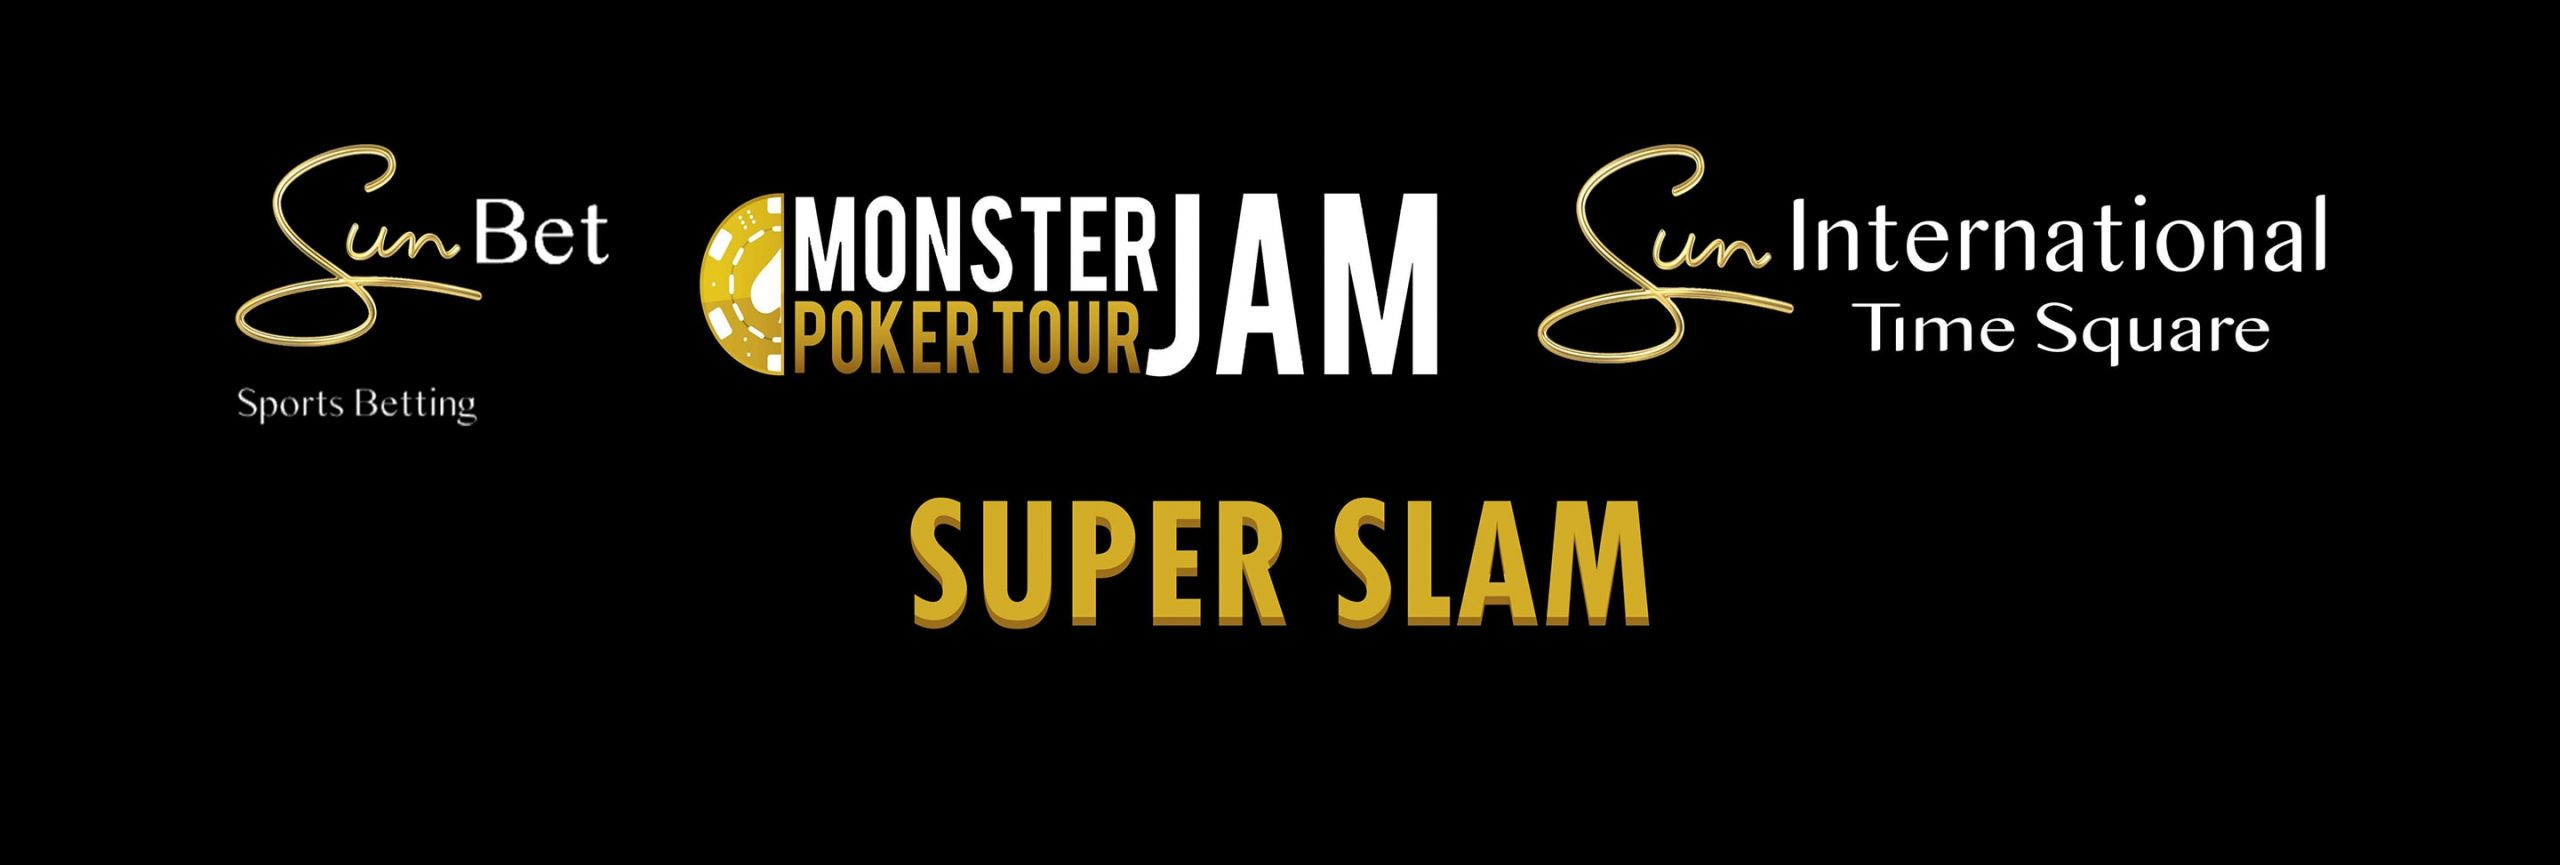 Time Square Super Slam Final Table time!